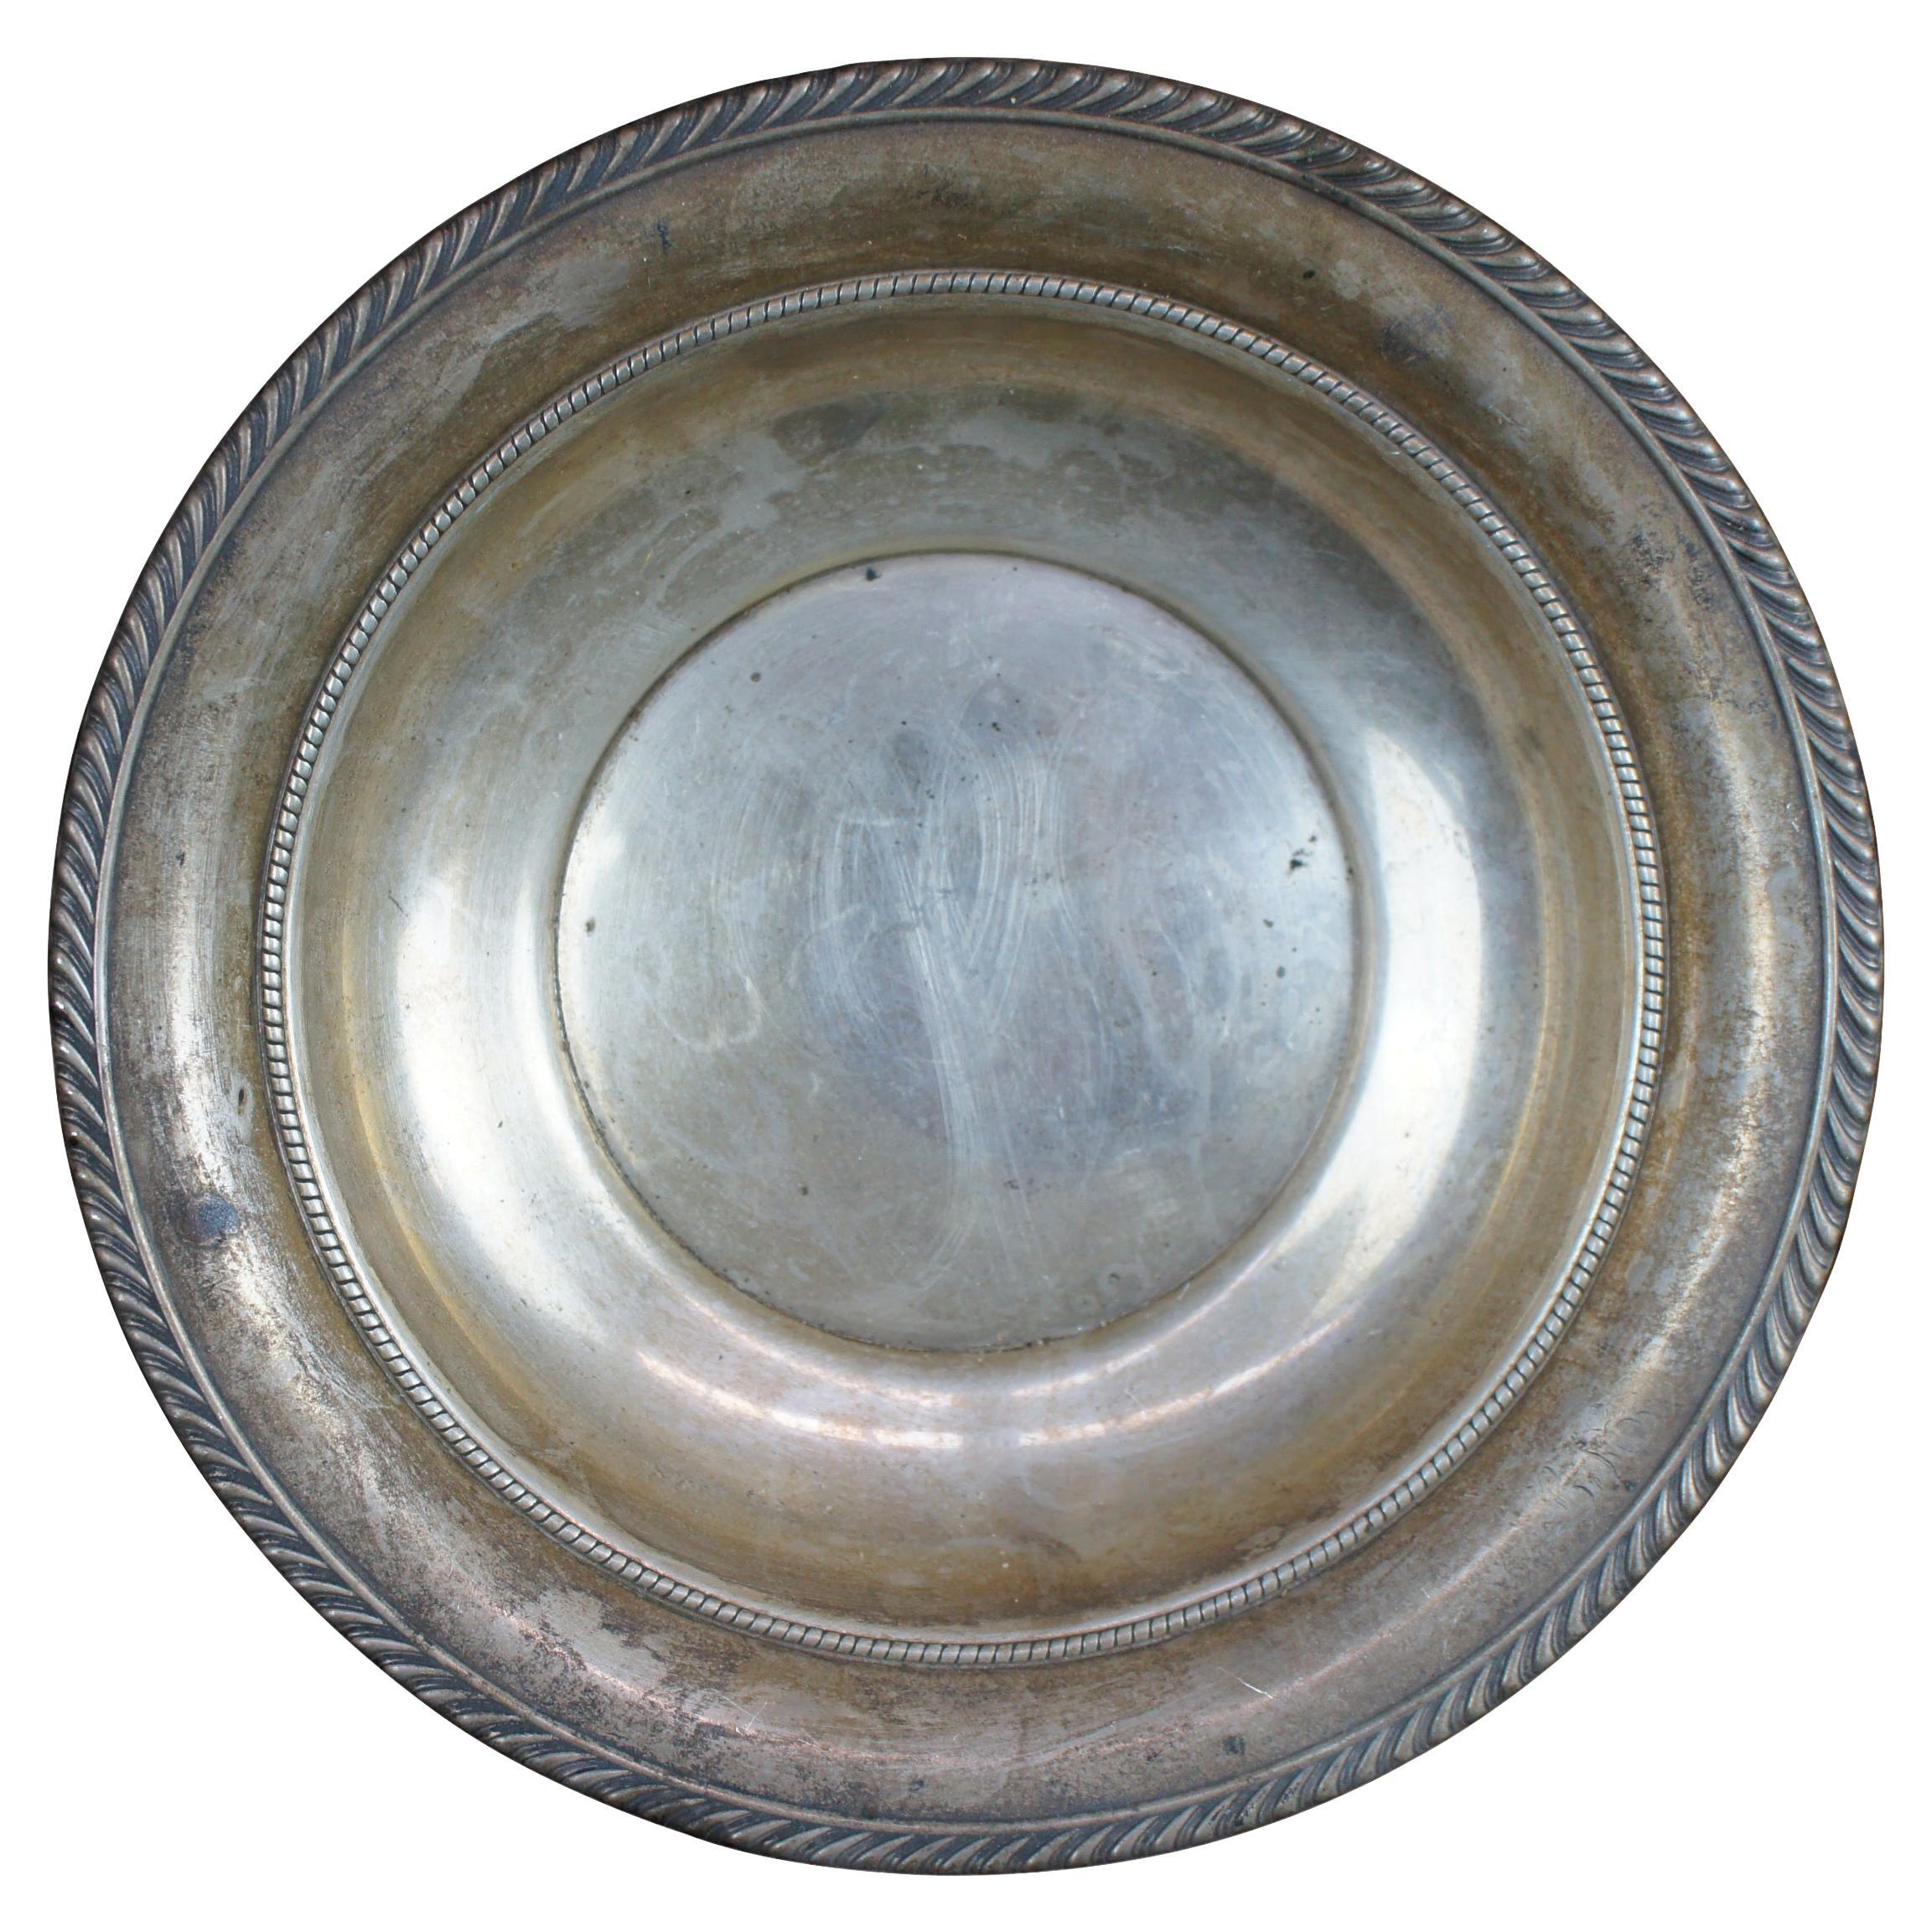 Gorham Manufacturing Company Sterling Silver